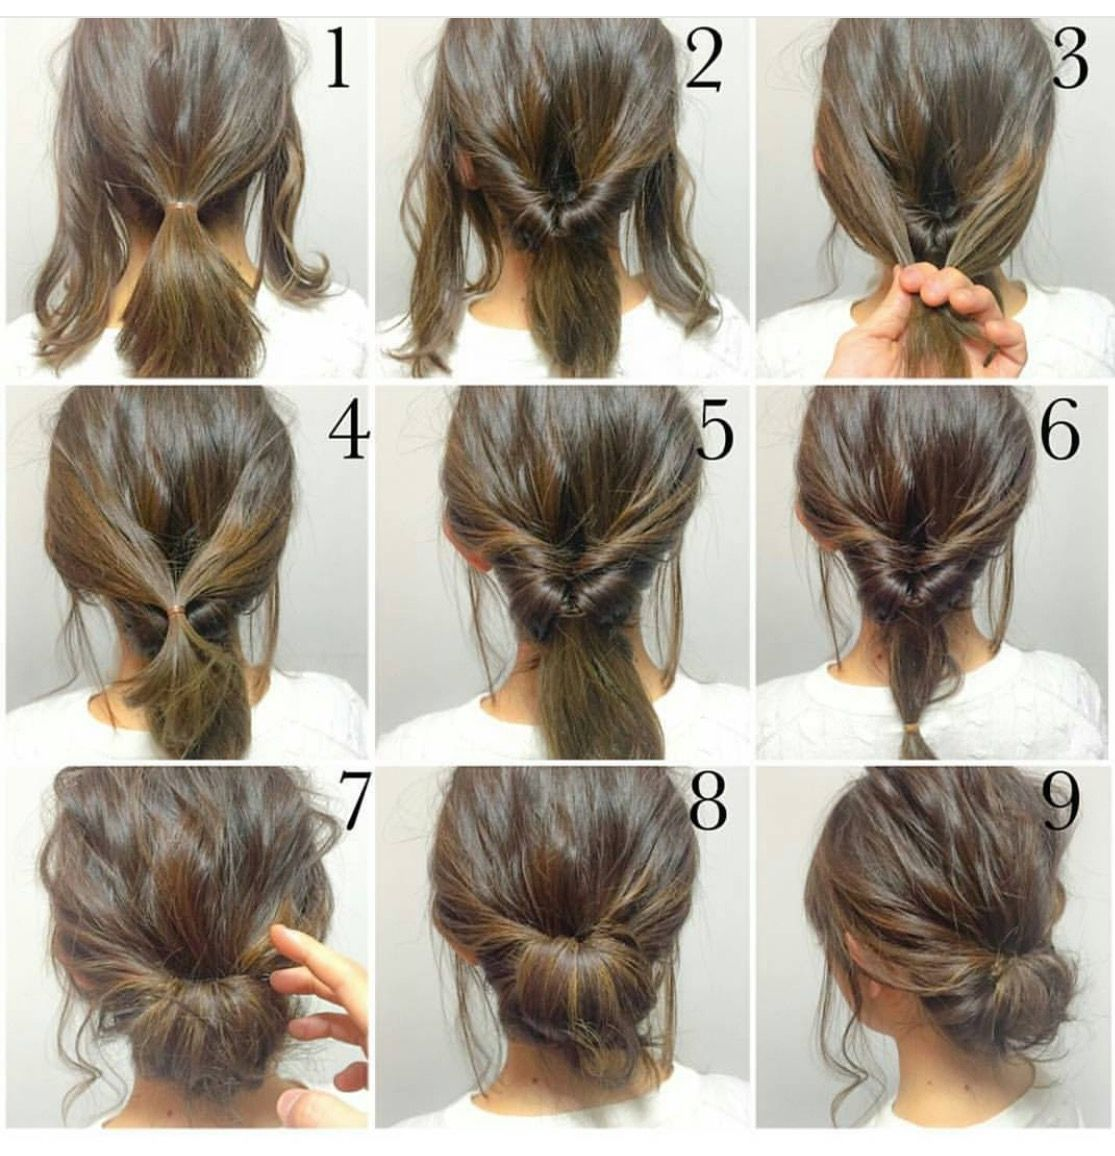 4 Messy Updos For Long Hair Hair Styles Short Hair Styles Work Hairstyles